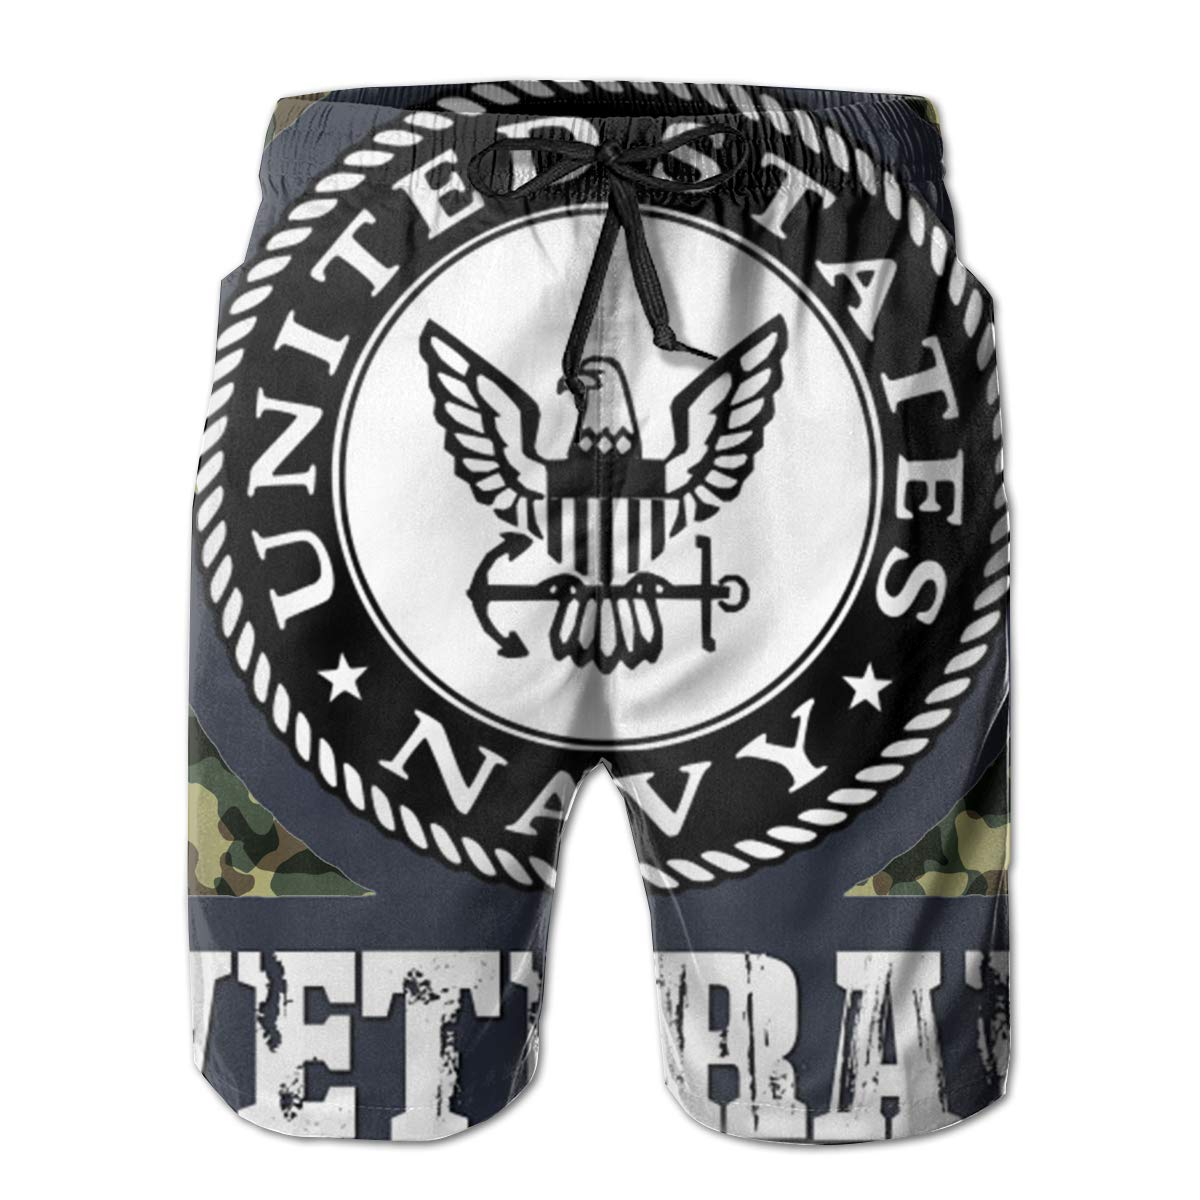 You Know And Good Navy Veteran Mens Swim Trunks Bathing Suit Beach Shorts